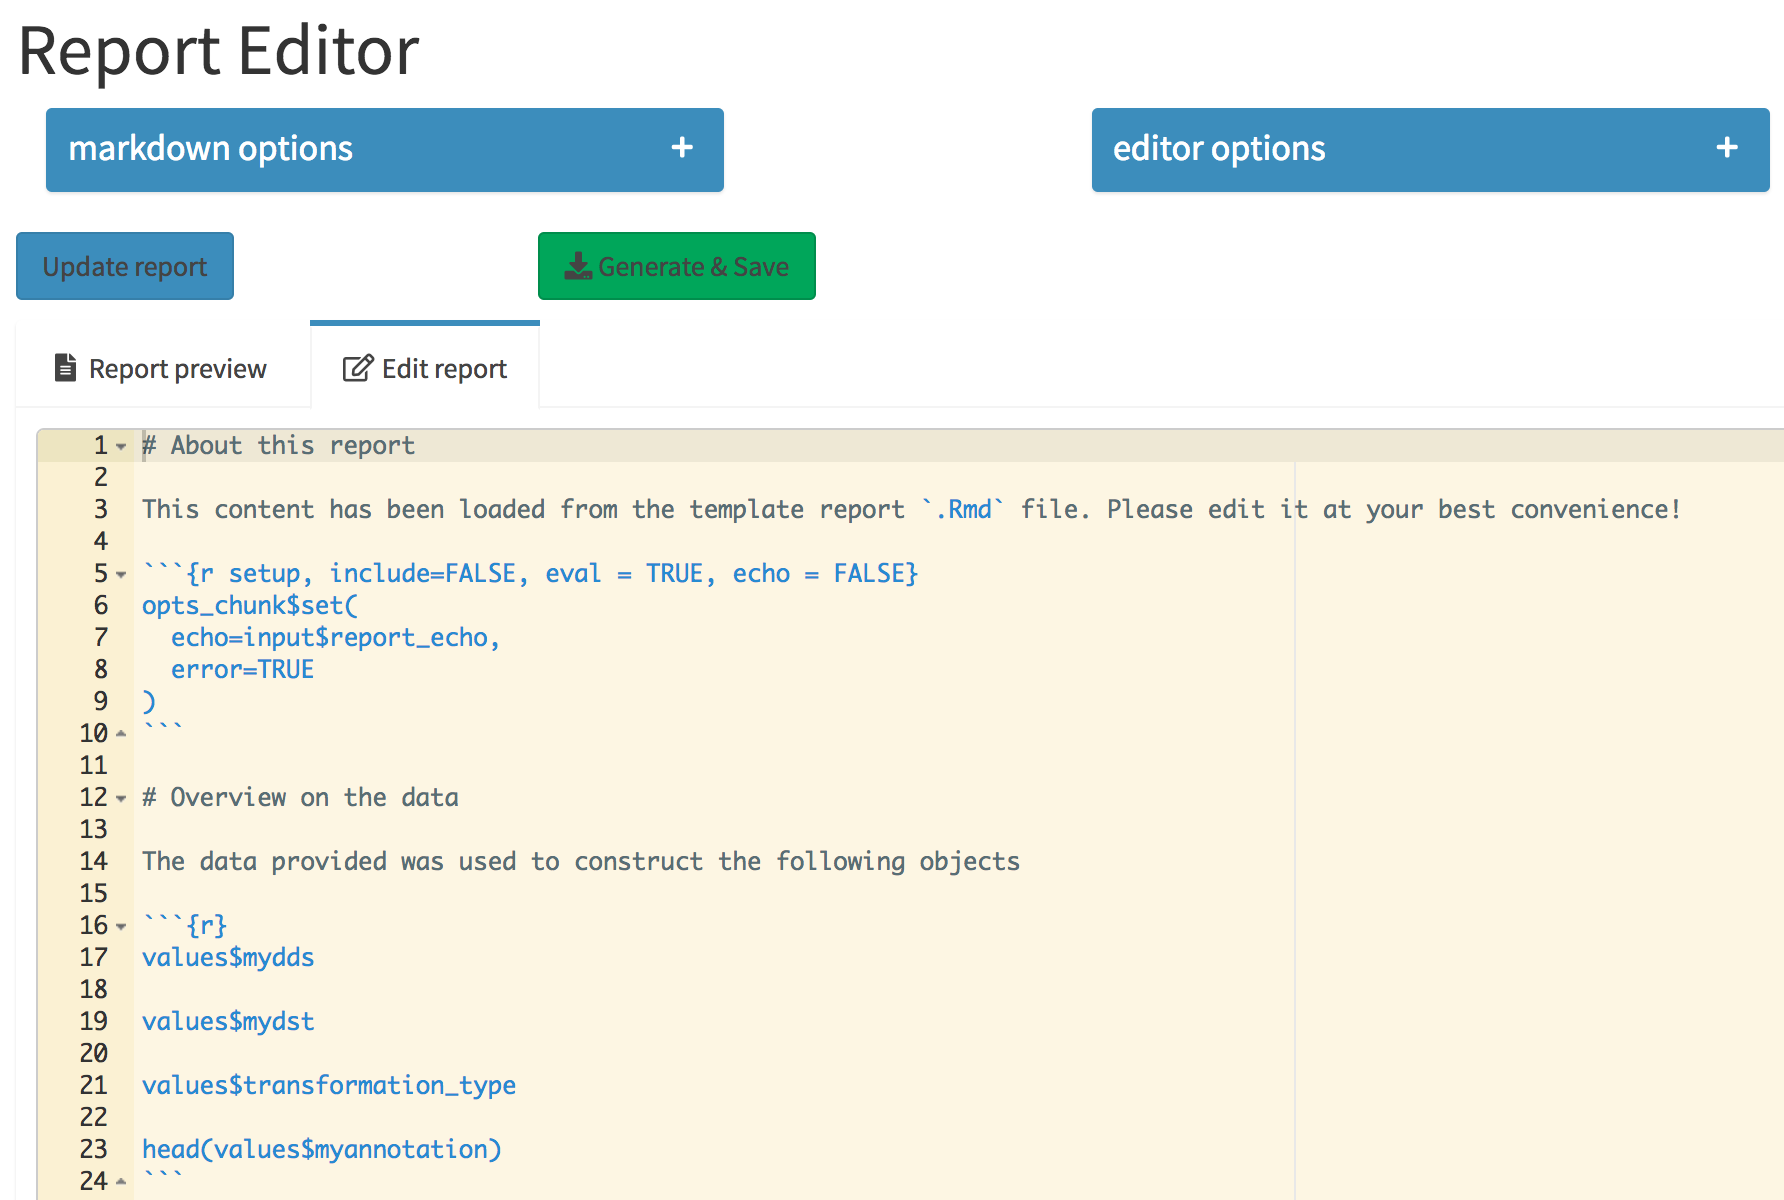 The Report Editor tab. The collapsible elements control general markdown and editor options, which are regarded when the report is compiled. Its content is specified in the Ace editor, integrated in the Shiny app.